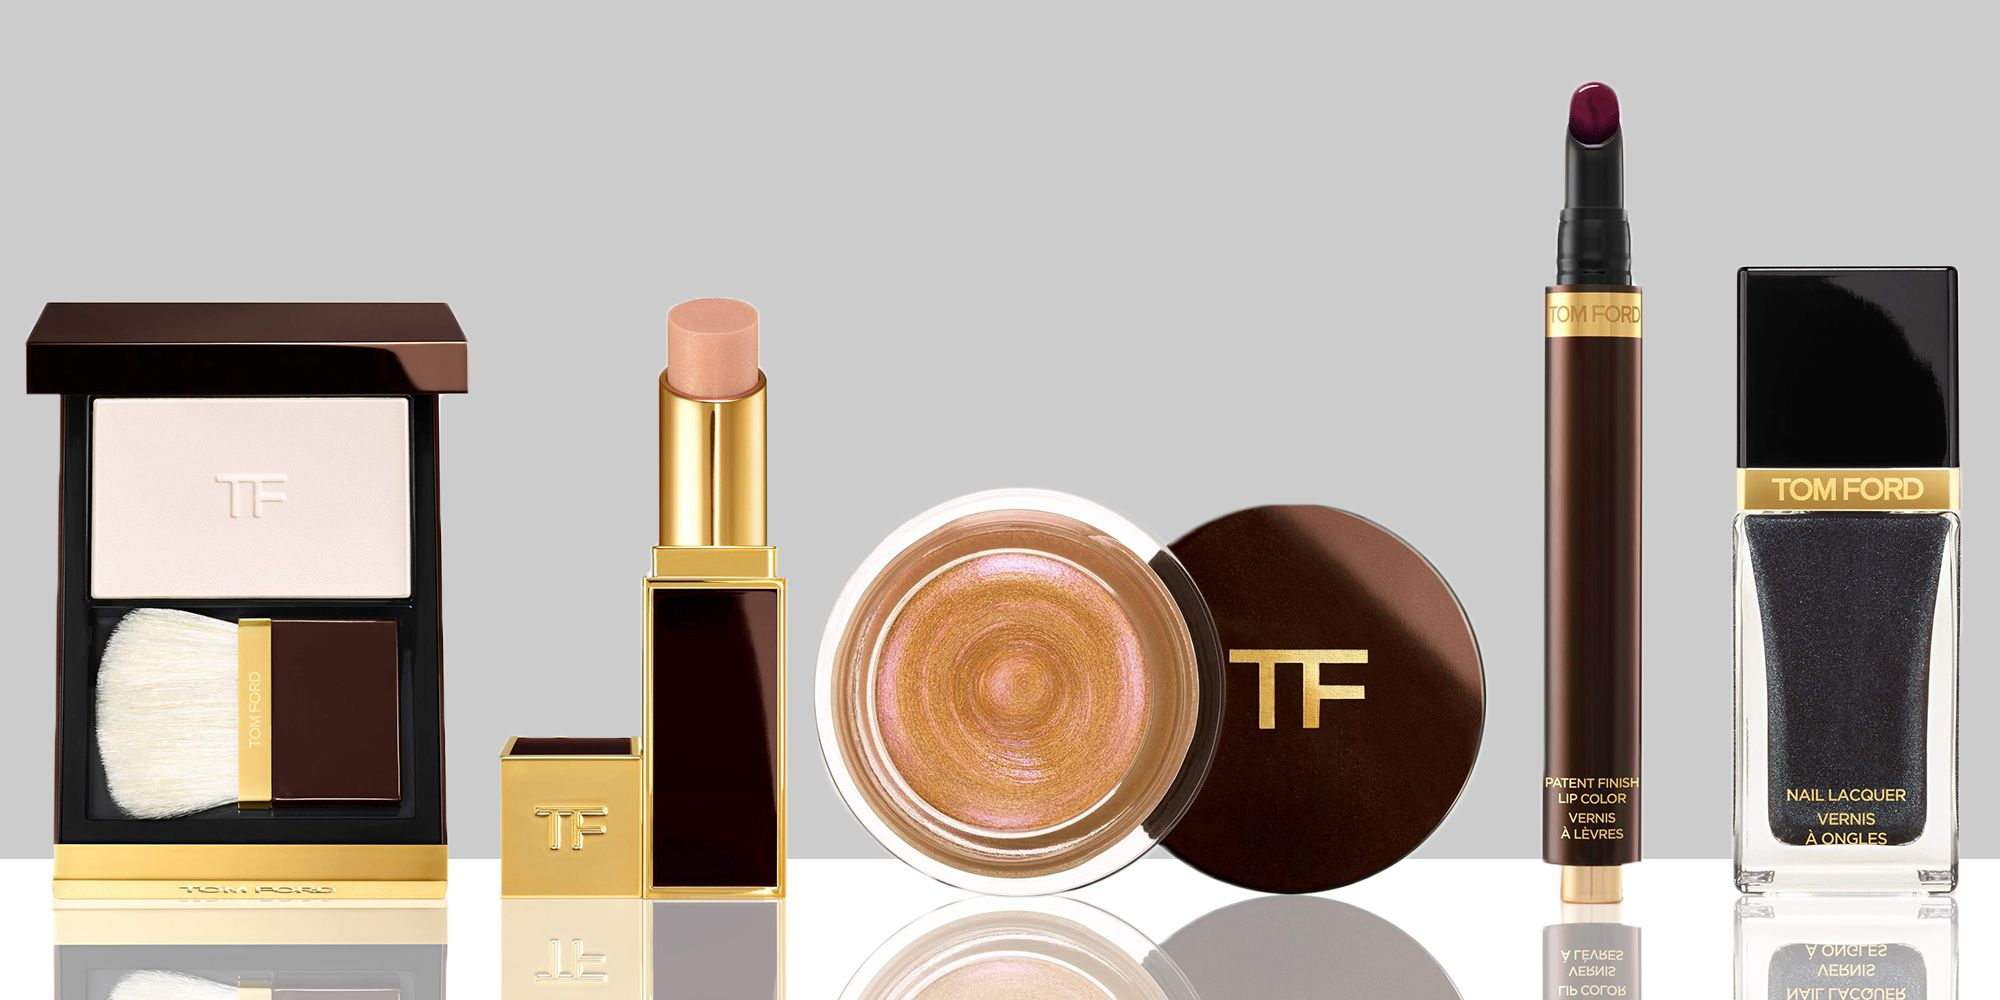 331176236b 10 Best Tom Ford Makeup Products - Tom Ford Lipstick and Eyeshadow